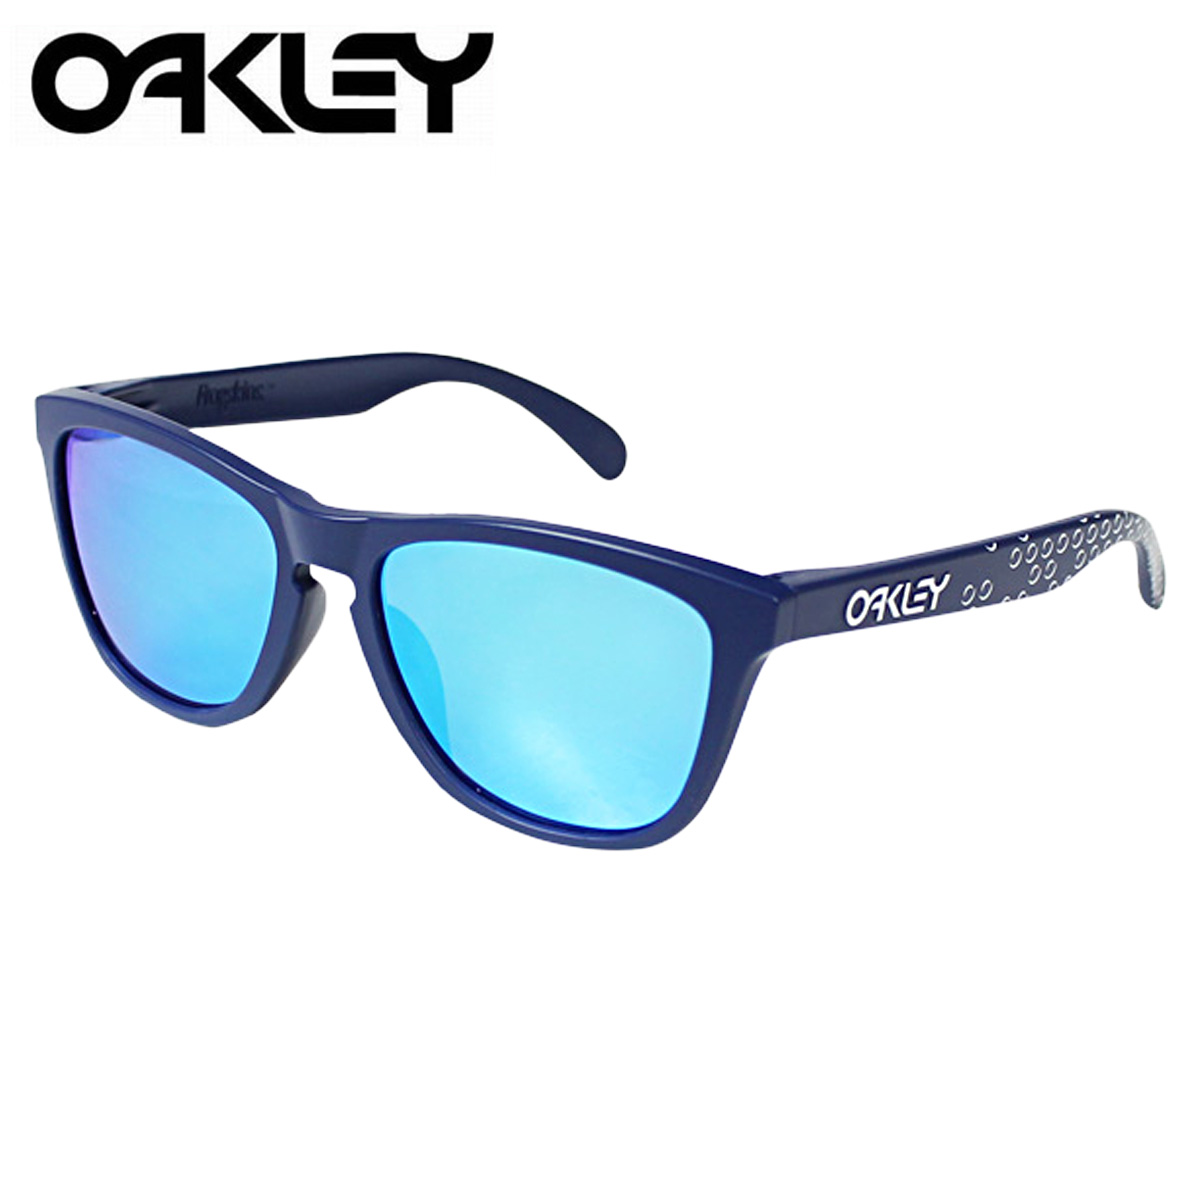 blue oakley glasses dl4w  Oakley Oakley Sunglasses Frogskins Asian Fit frog skin mens Womens glasses  Asian fitting OO9245-22